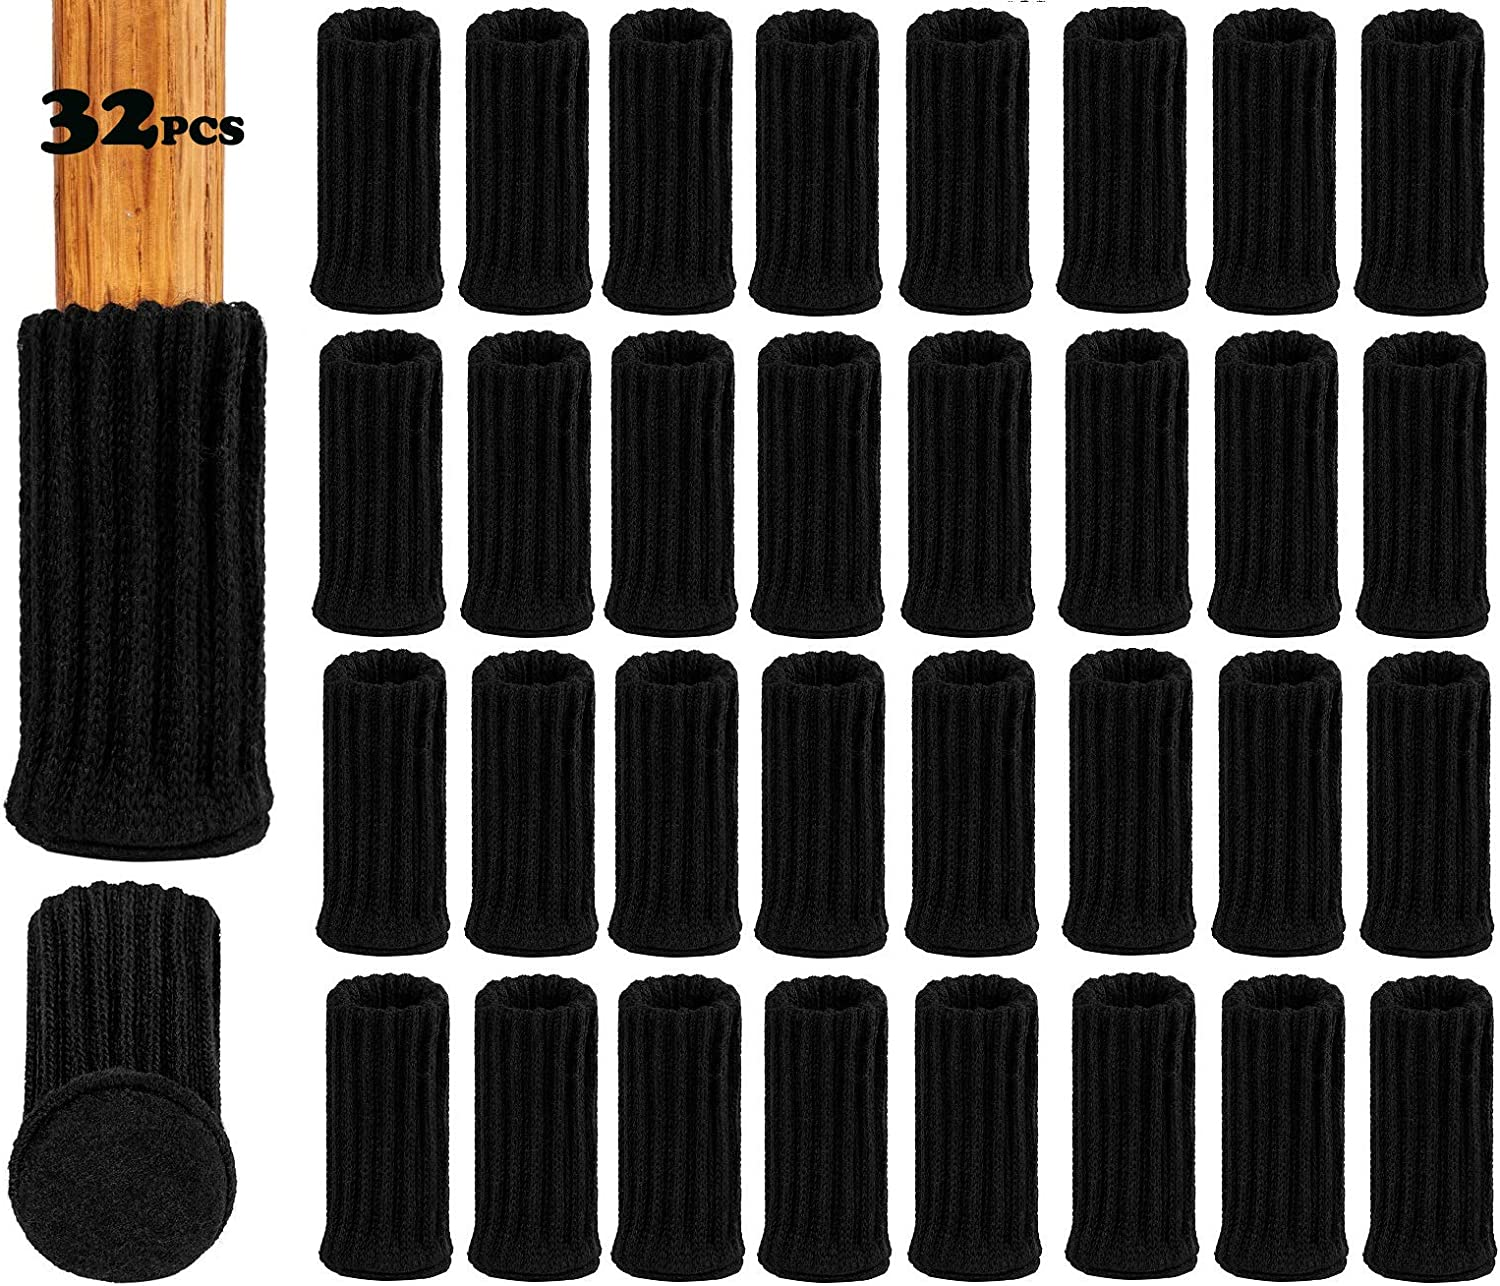 "32PCS 1""-2""Chair Socks/Chair Caps/Chair Leg Feet Socks/Furniture Boots/Elastic Wood Floor Chair Leg Cover/Furniture Legs Socks/Knitted Furniture Feet Socks/Chair Boots/Furniture Socks"